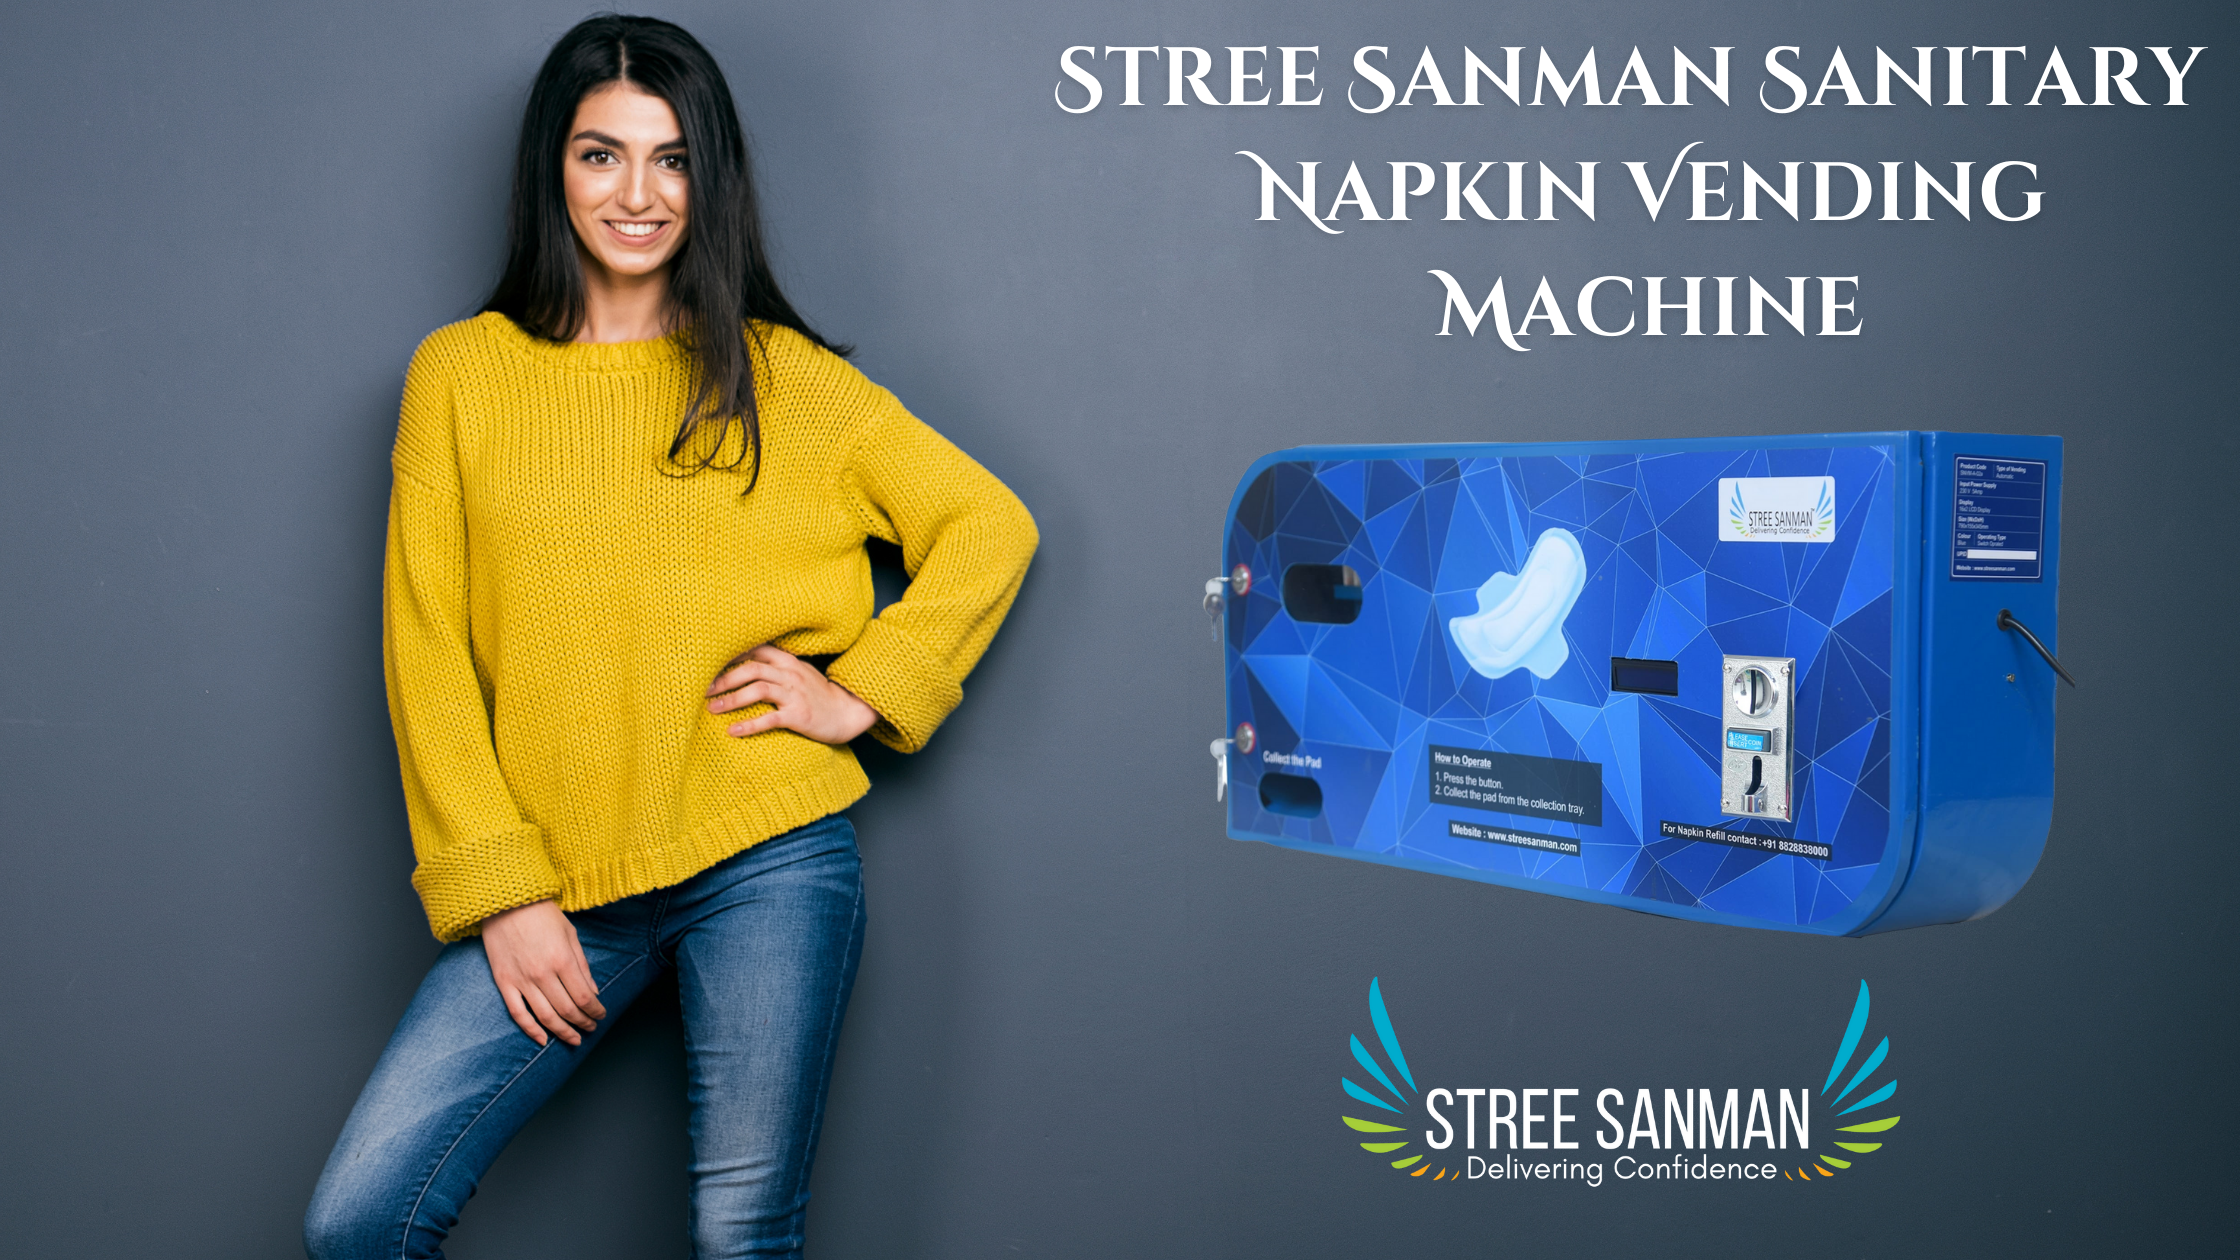 Stree Sanman Sanitary Napkin Vending Machine An ideal solution to overcome the Sanitary pads Crisis during Lockdown.